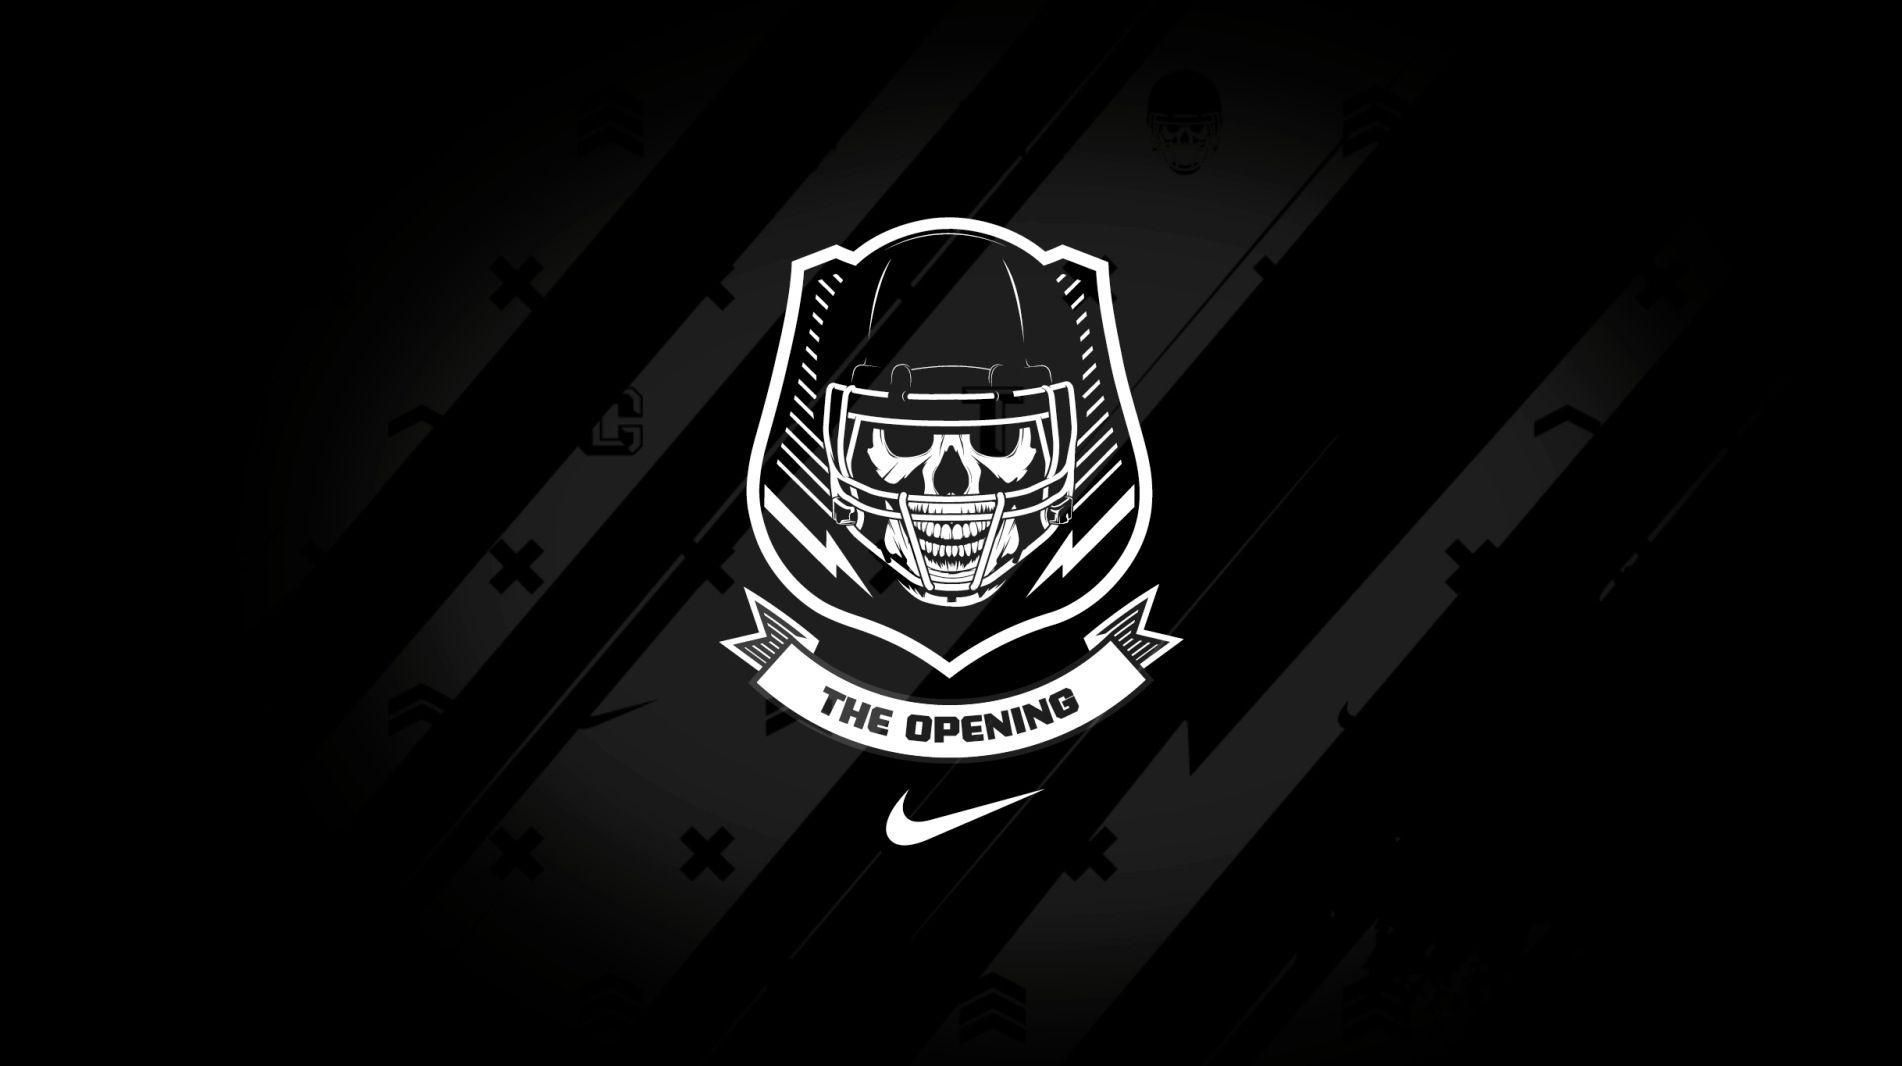 10 New Nike American Football Wallpapers Full Hd 1920 1080 For Pc Desktop Football Wallpaper Football Wallpaper Iphone American Football